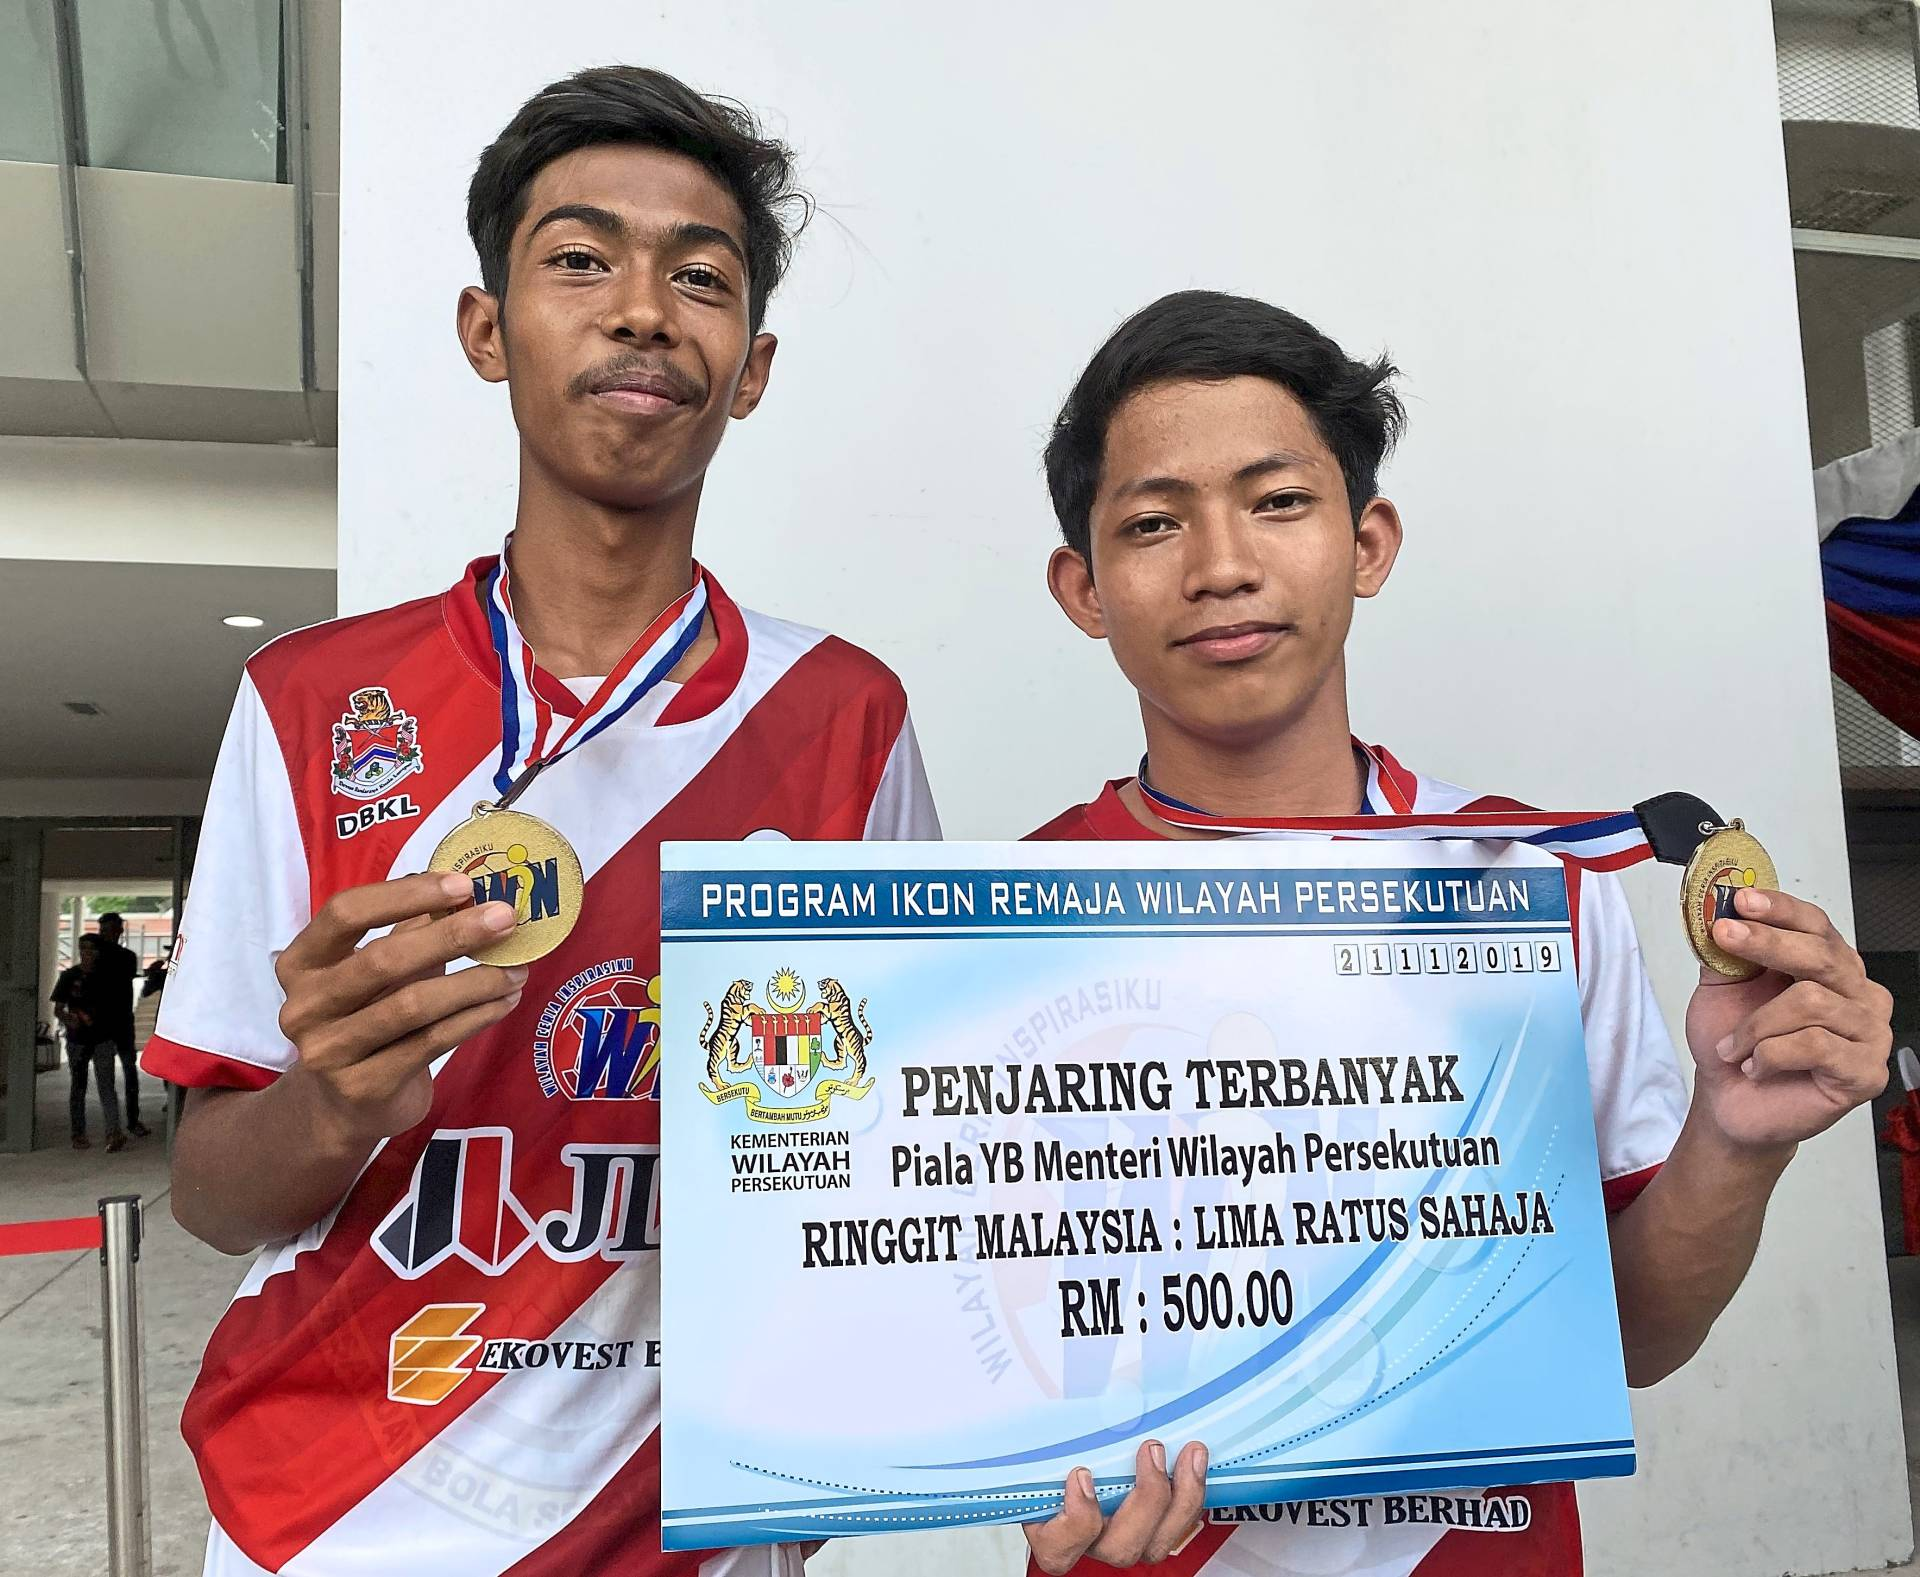 Top scorer Tuan Muhd (right) and Most Valuable Player Muhd Shahrul  from SMK Seri Mulia posing with their awards.